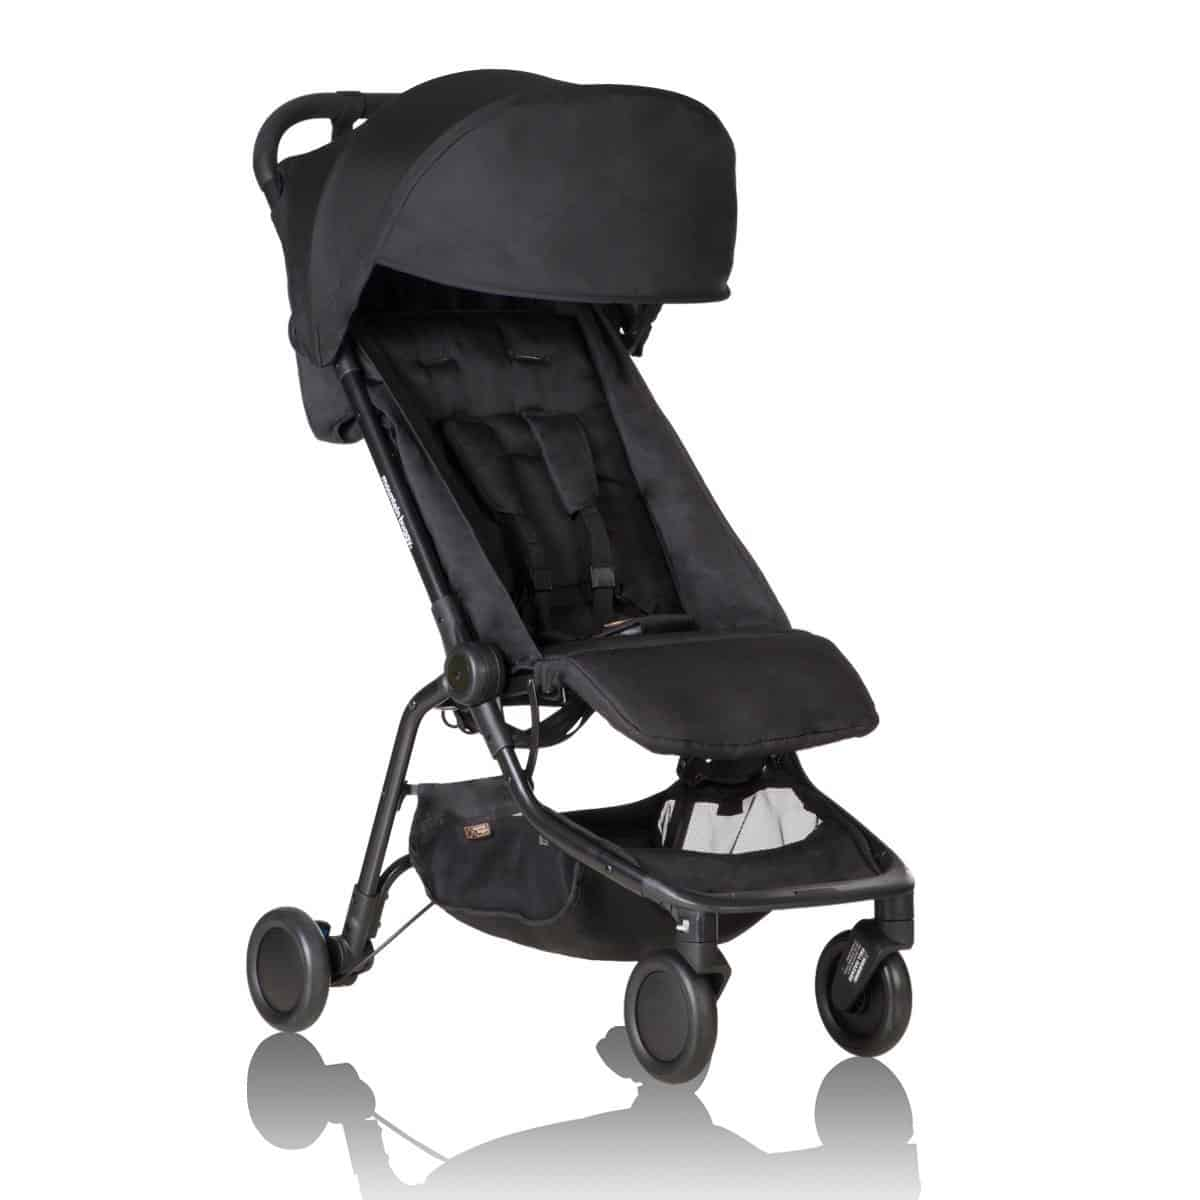 The Best Travel Stroller 2020